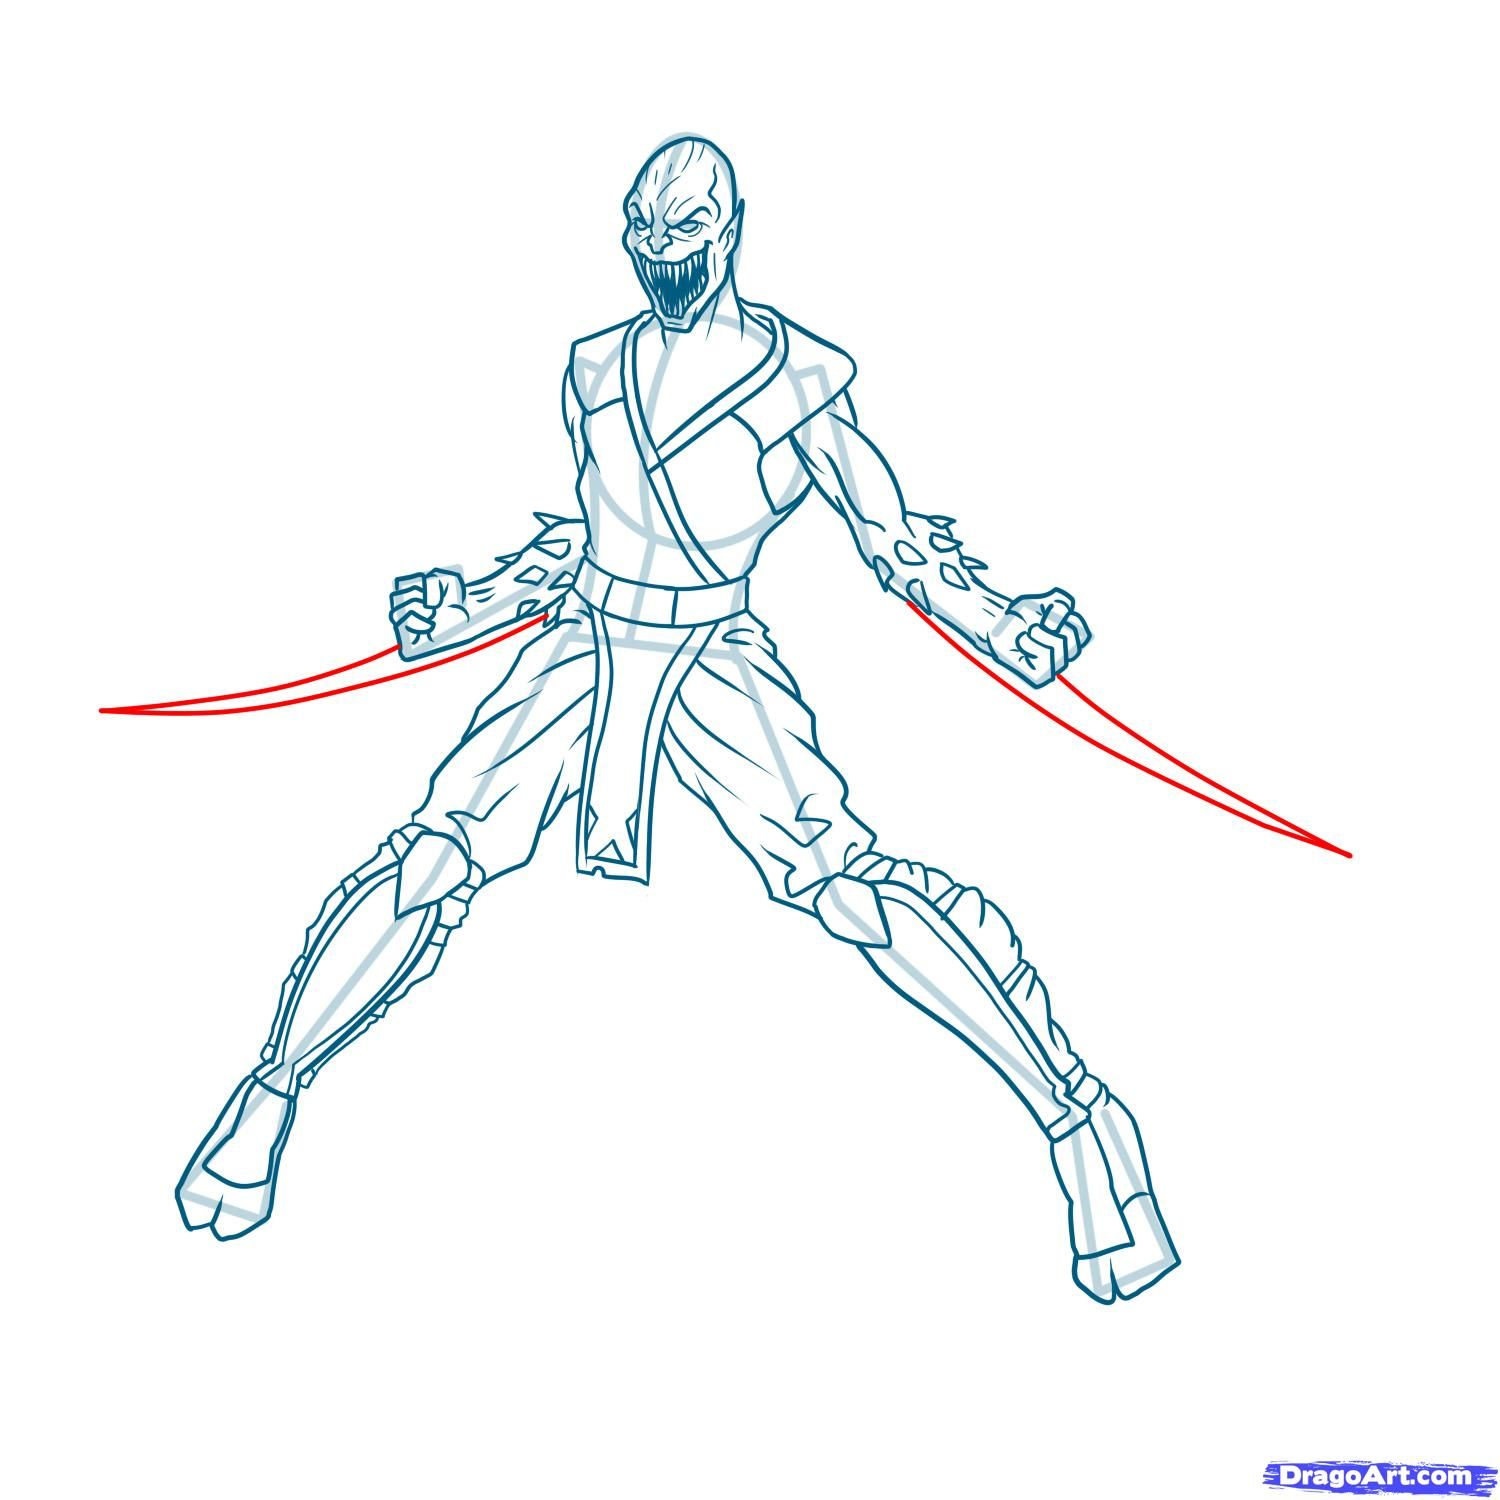 How to draw the Scorpion to the utmost from Mortal Kombat with a pencil step by step 16